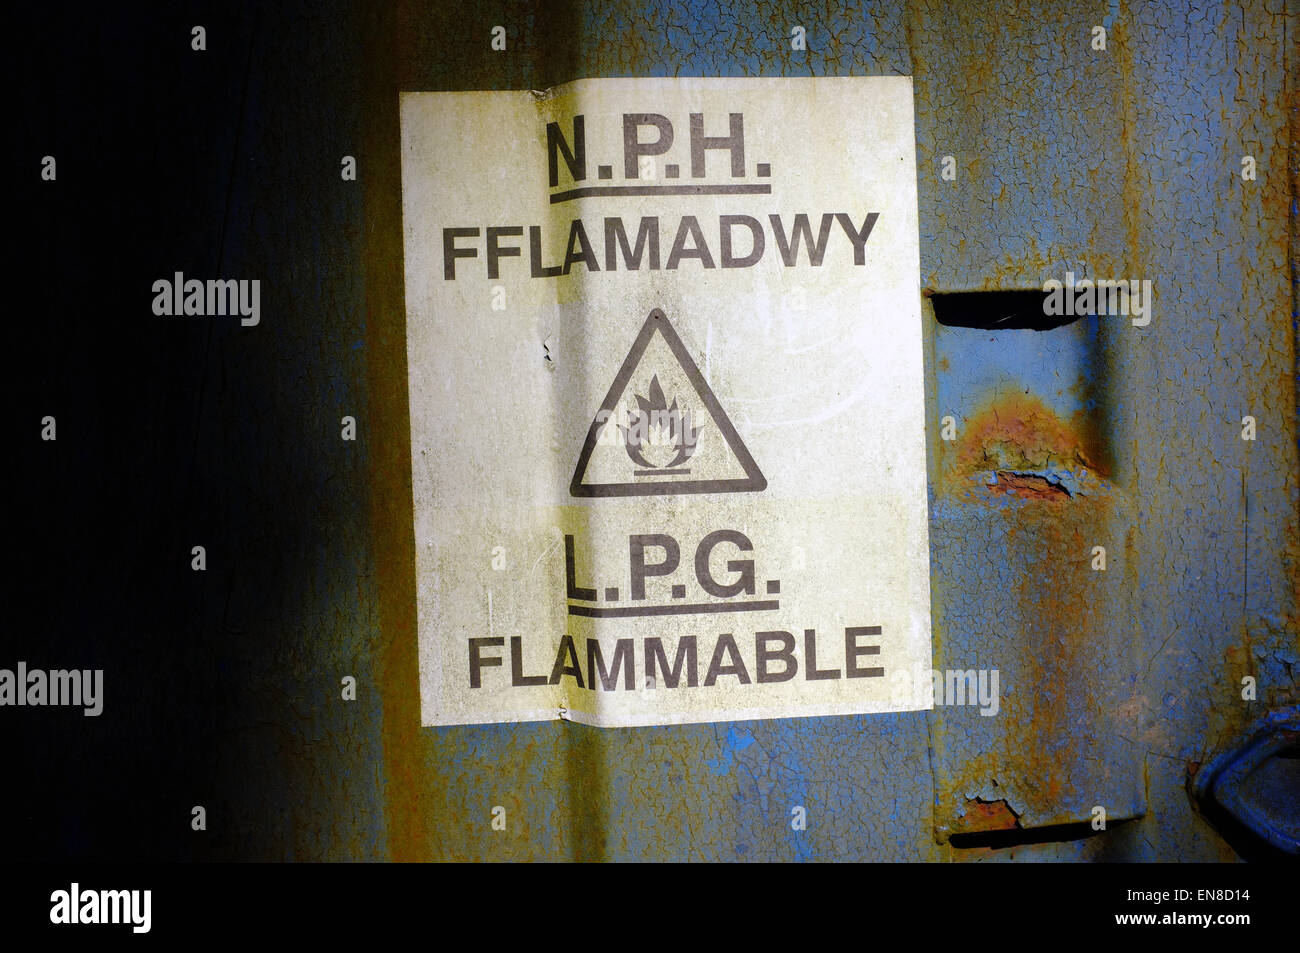 A bilingual highly flammable warning sign in English and Welsh on the side of a container. - Stock Image